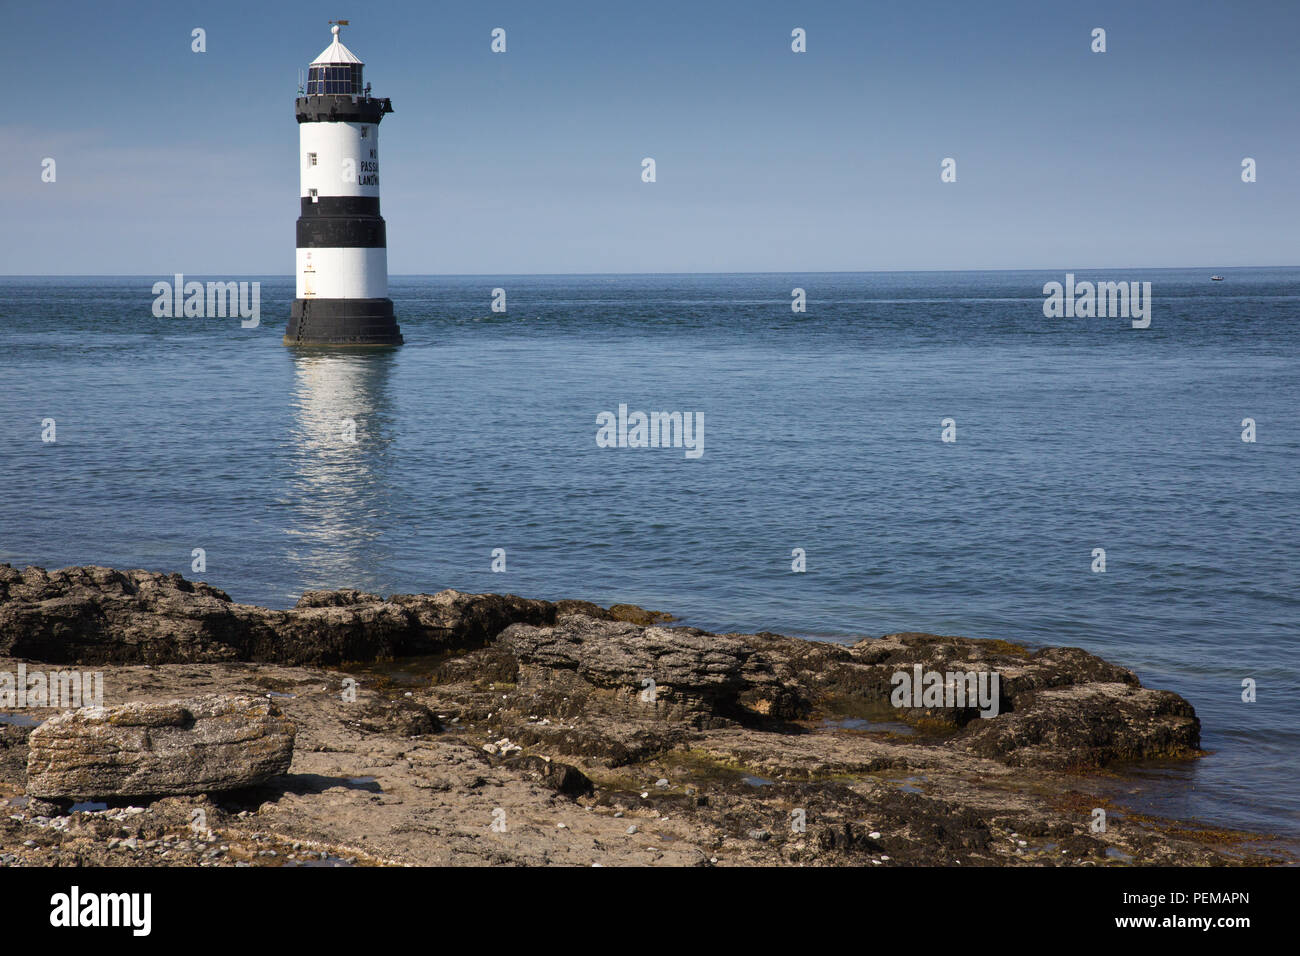 Penmon Lighthouse and Puffin Island, Anglesey Stock Photo